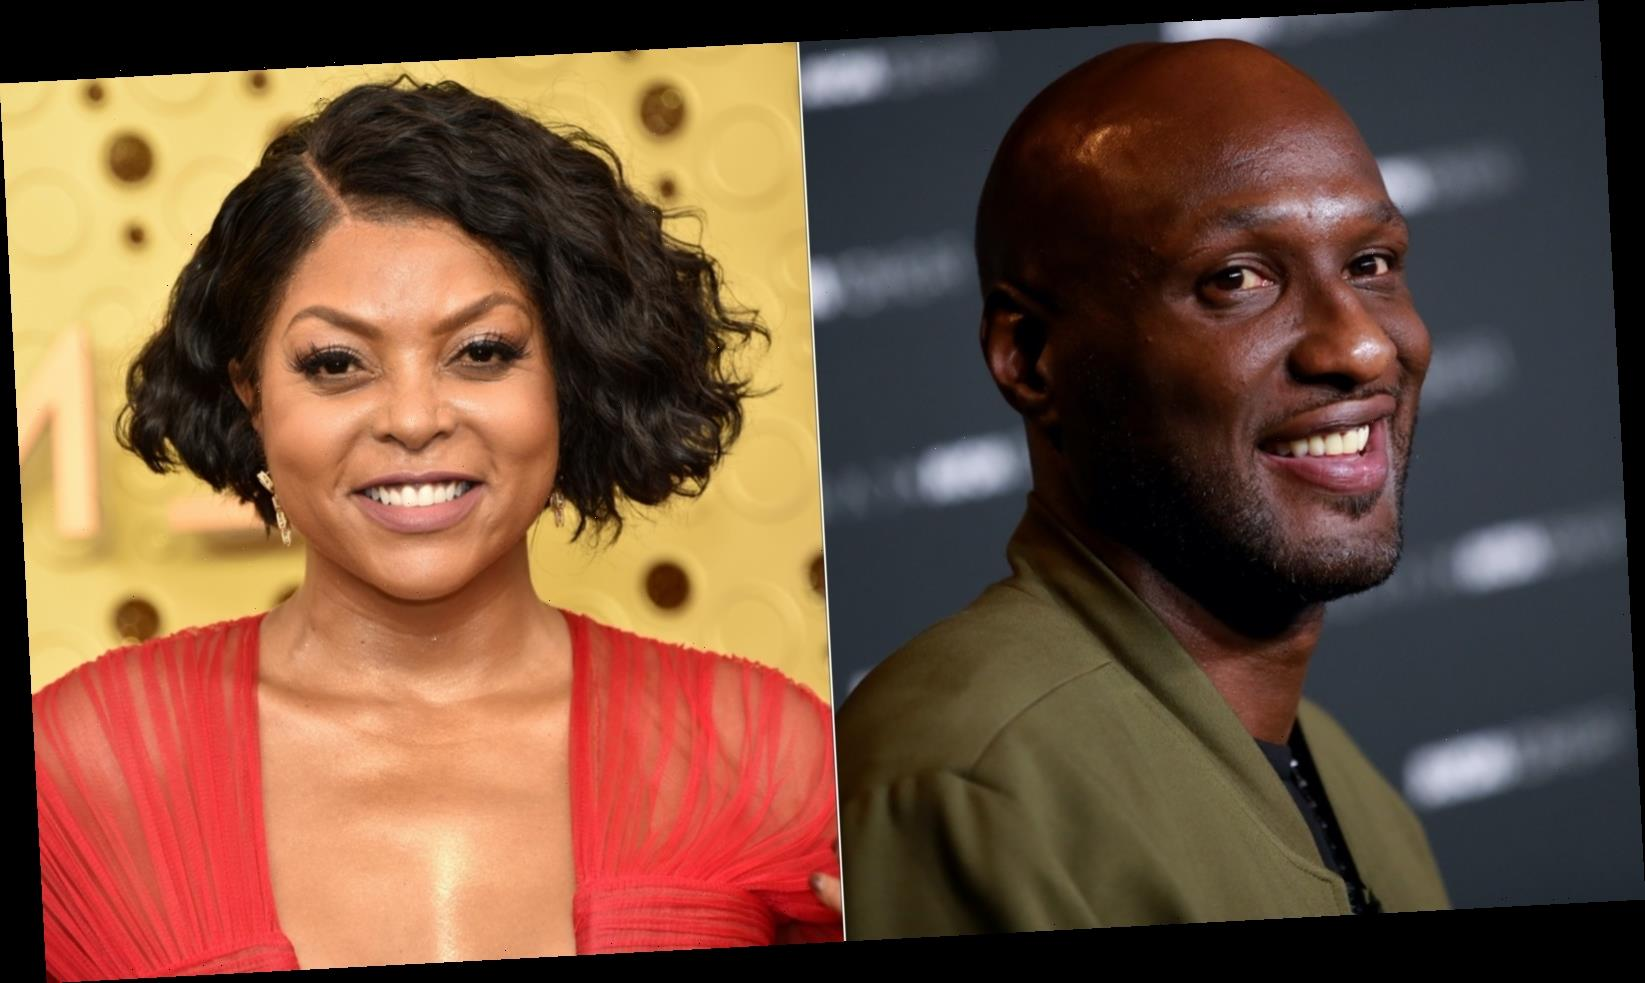 The truth about Taraji P. Henson and Lamar Odom's relationship